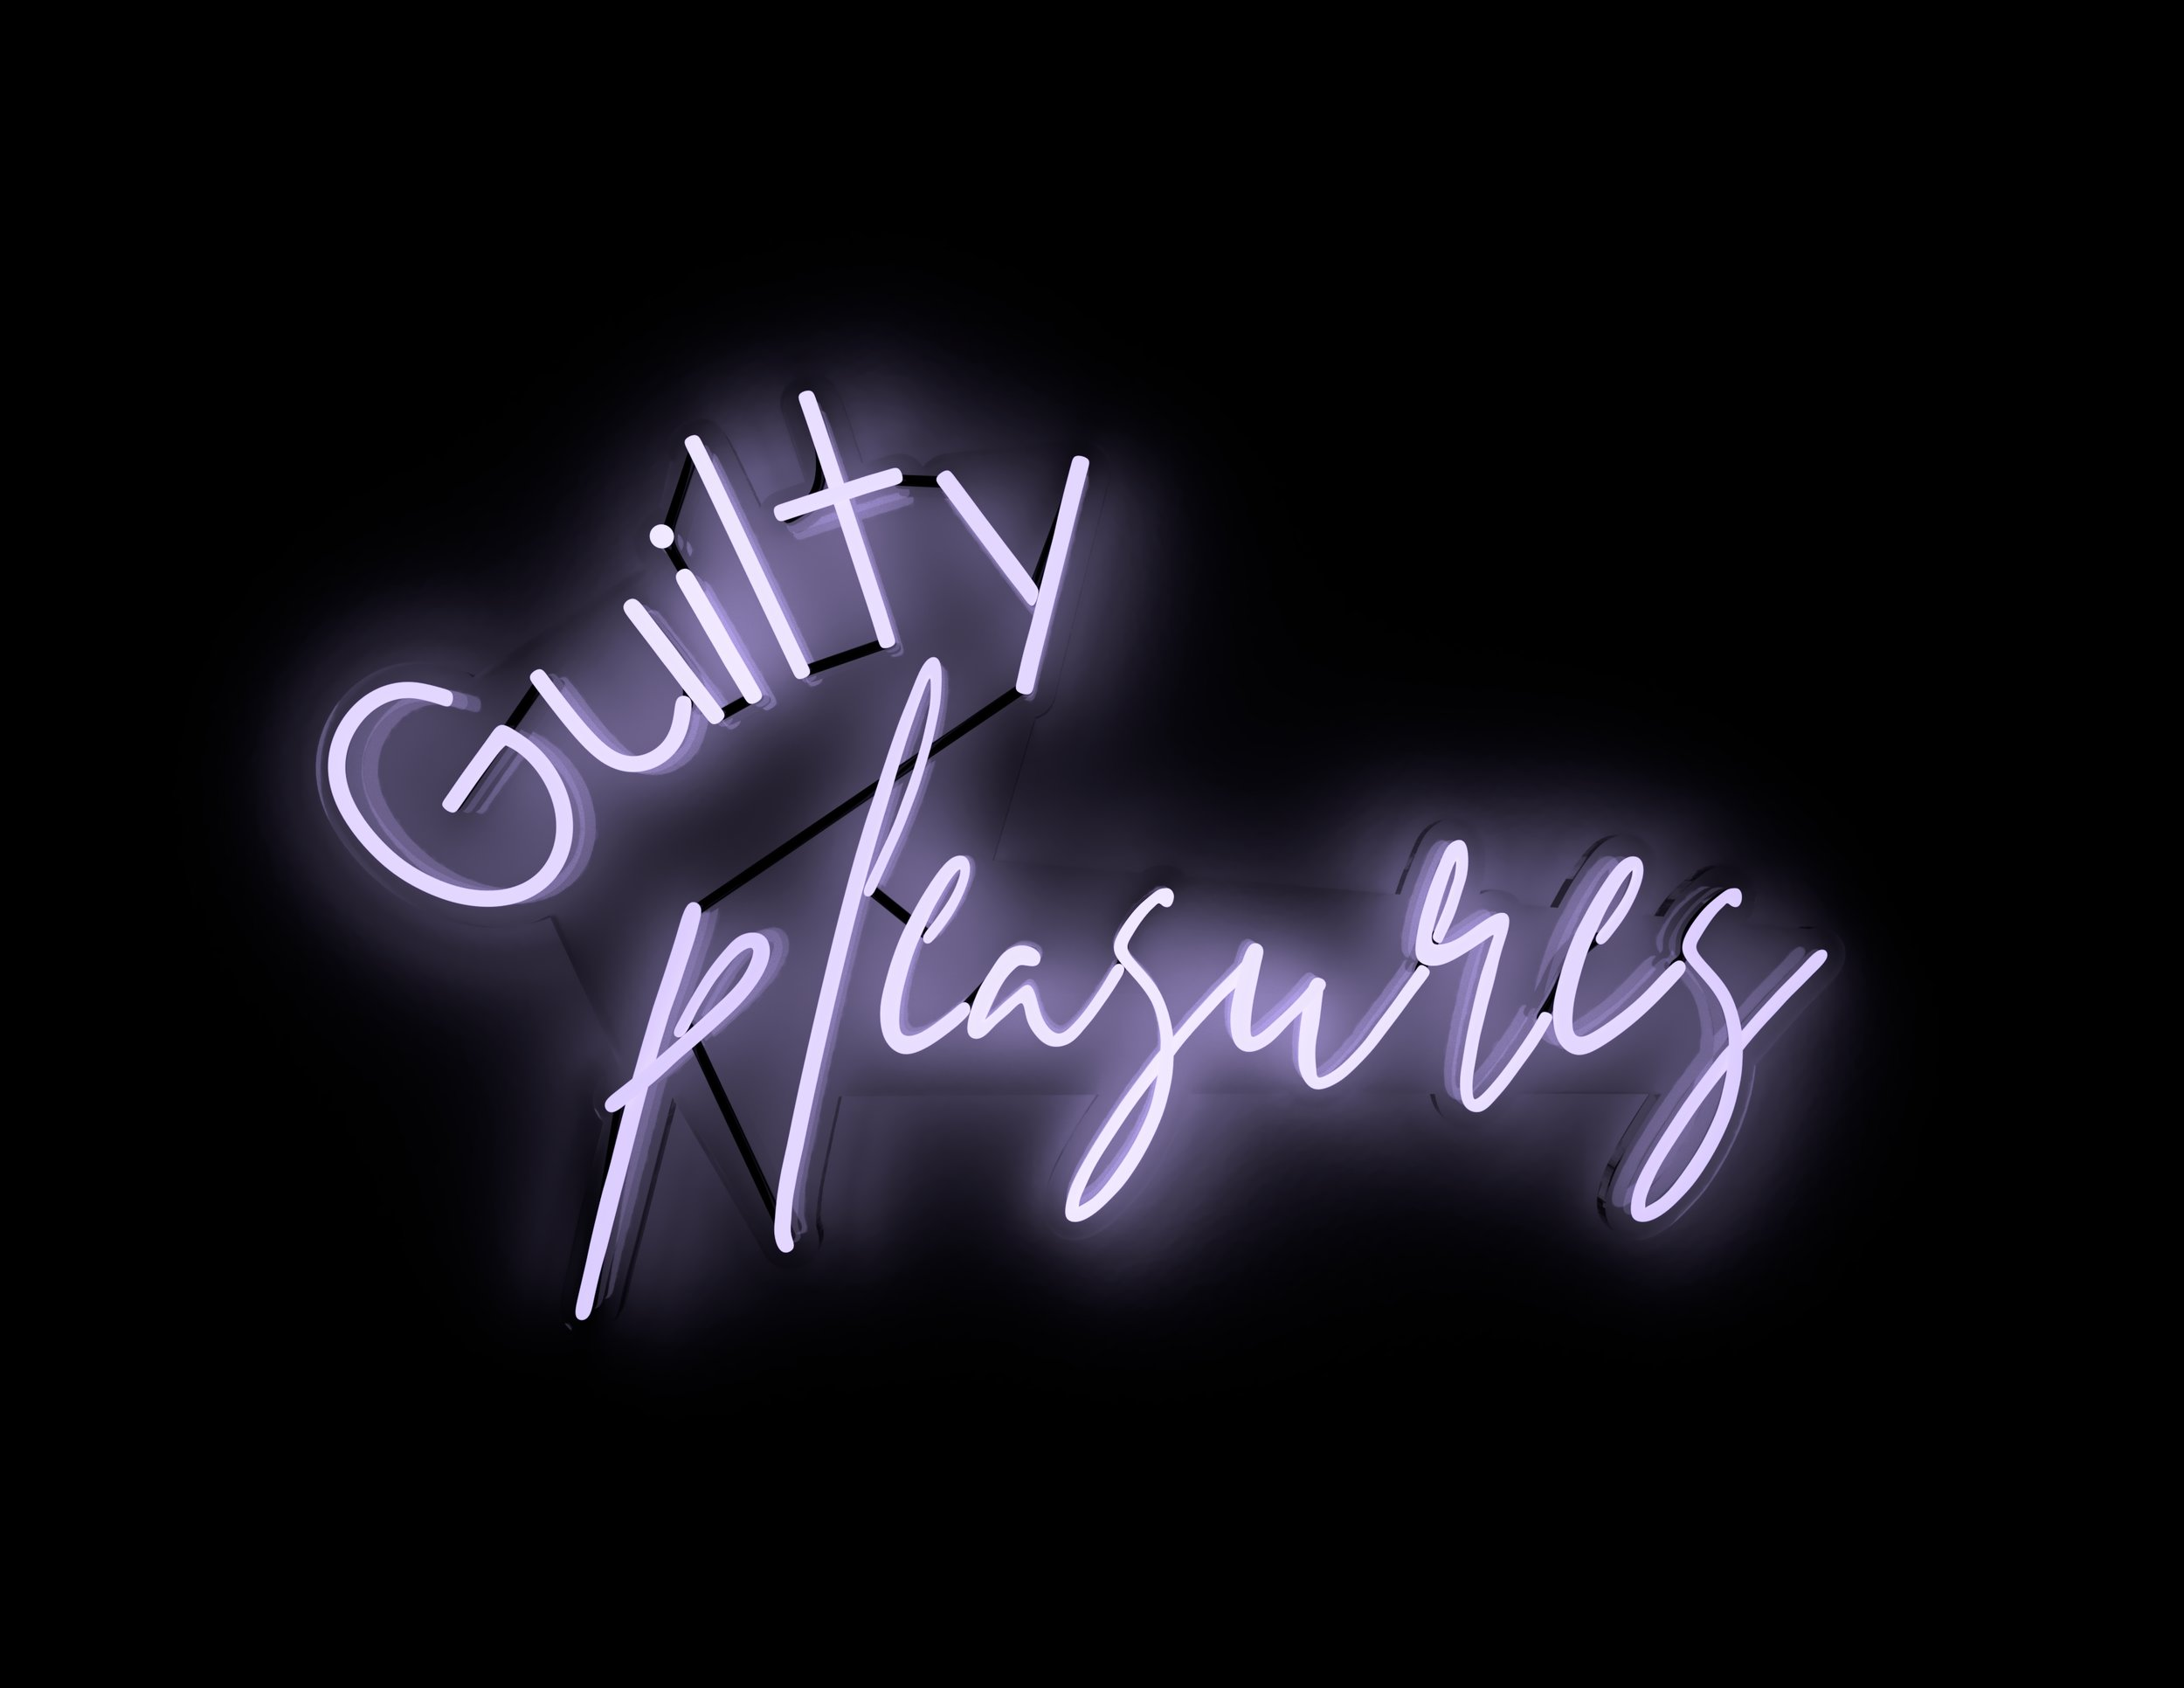 McGonagle_neon_Guilty_Pleasures.jpg